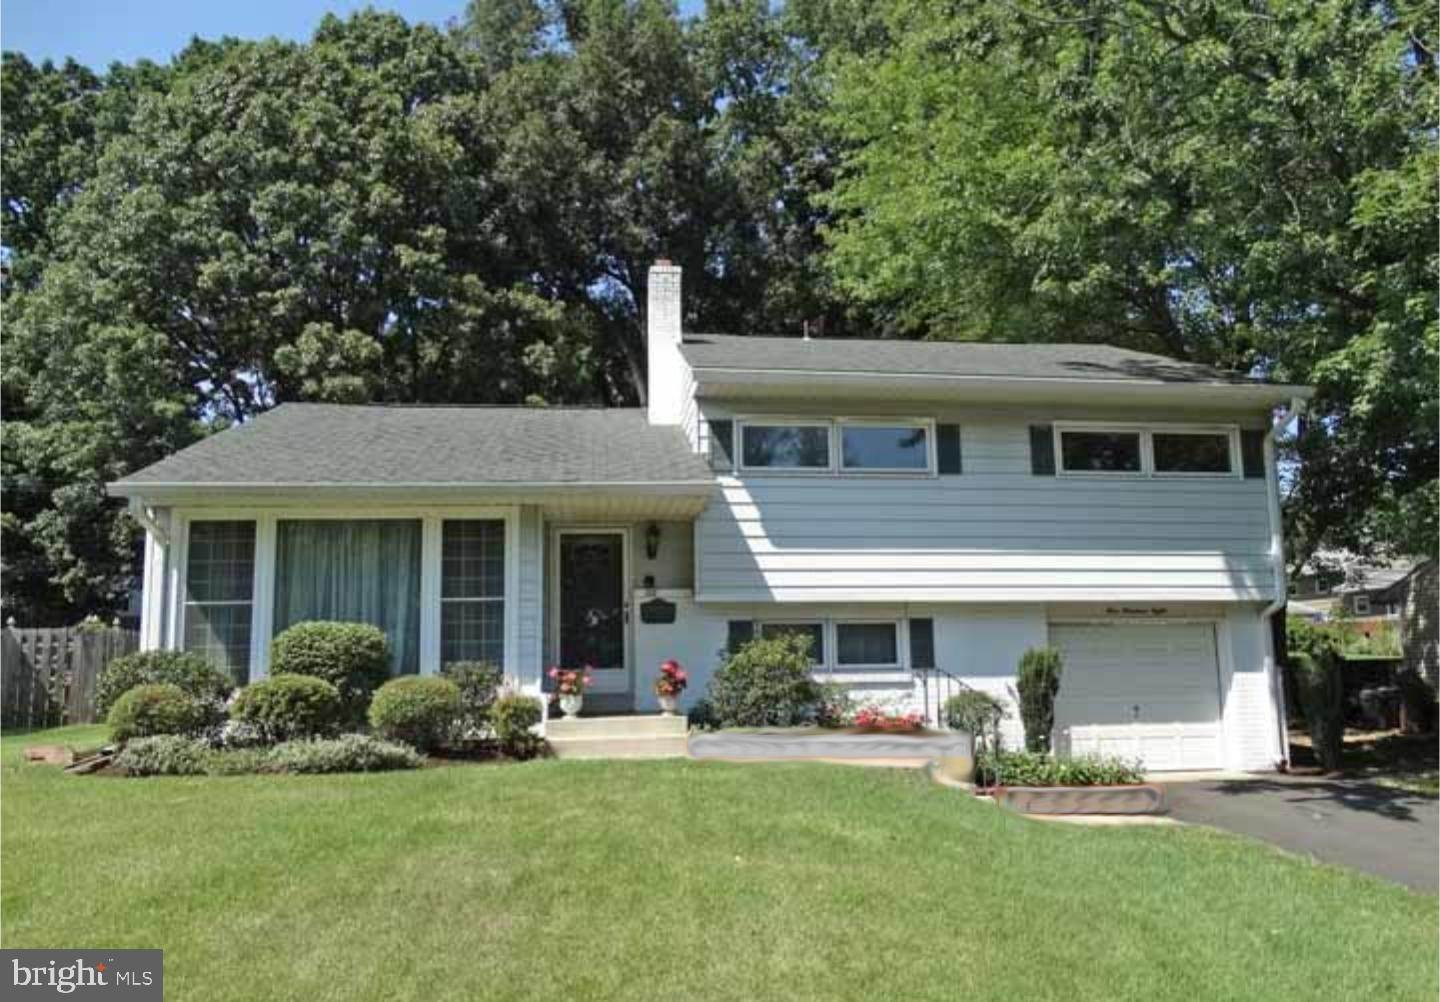 Detached House for Sale at 108 HEDGEROW Drive Morrisville, Pennsylvania 19067 United States